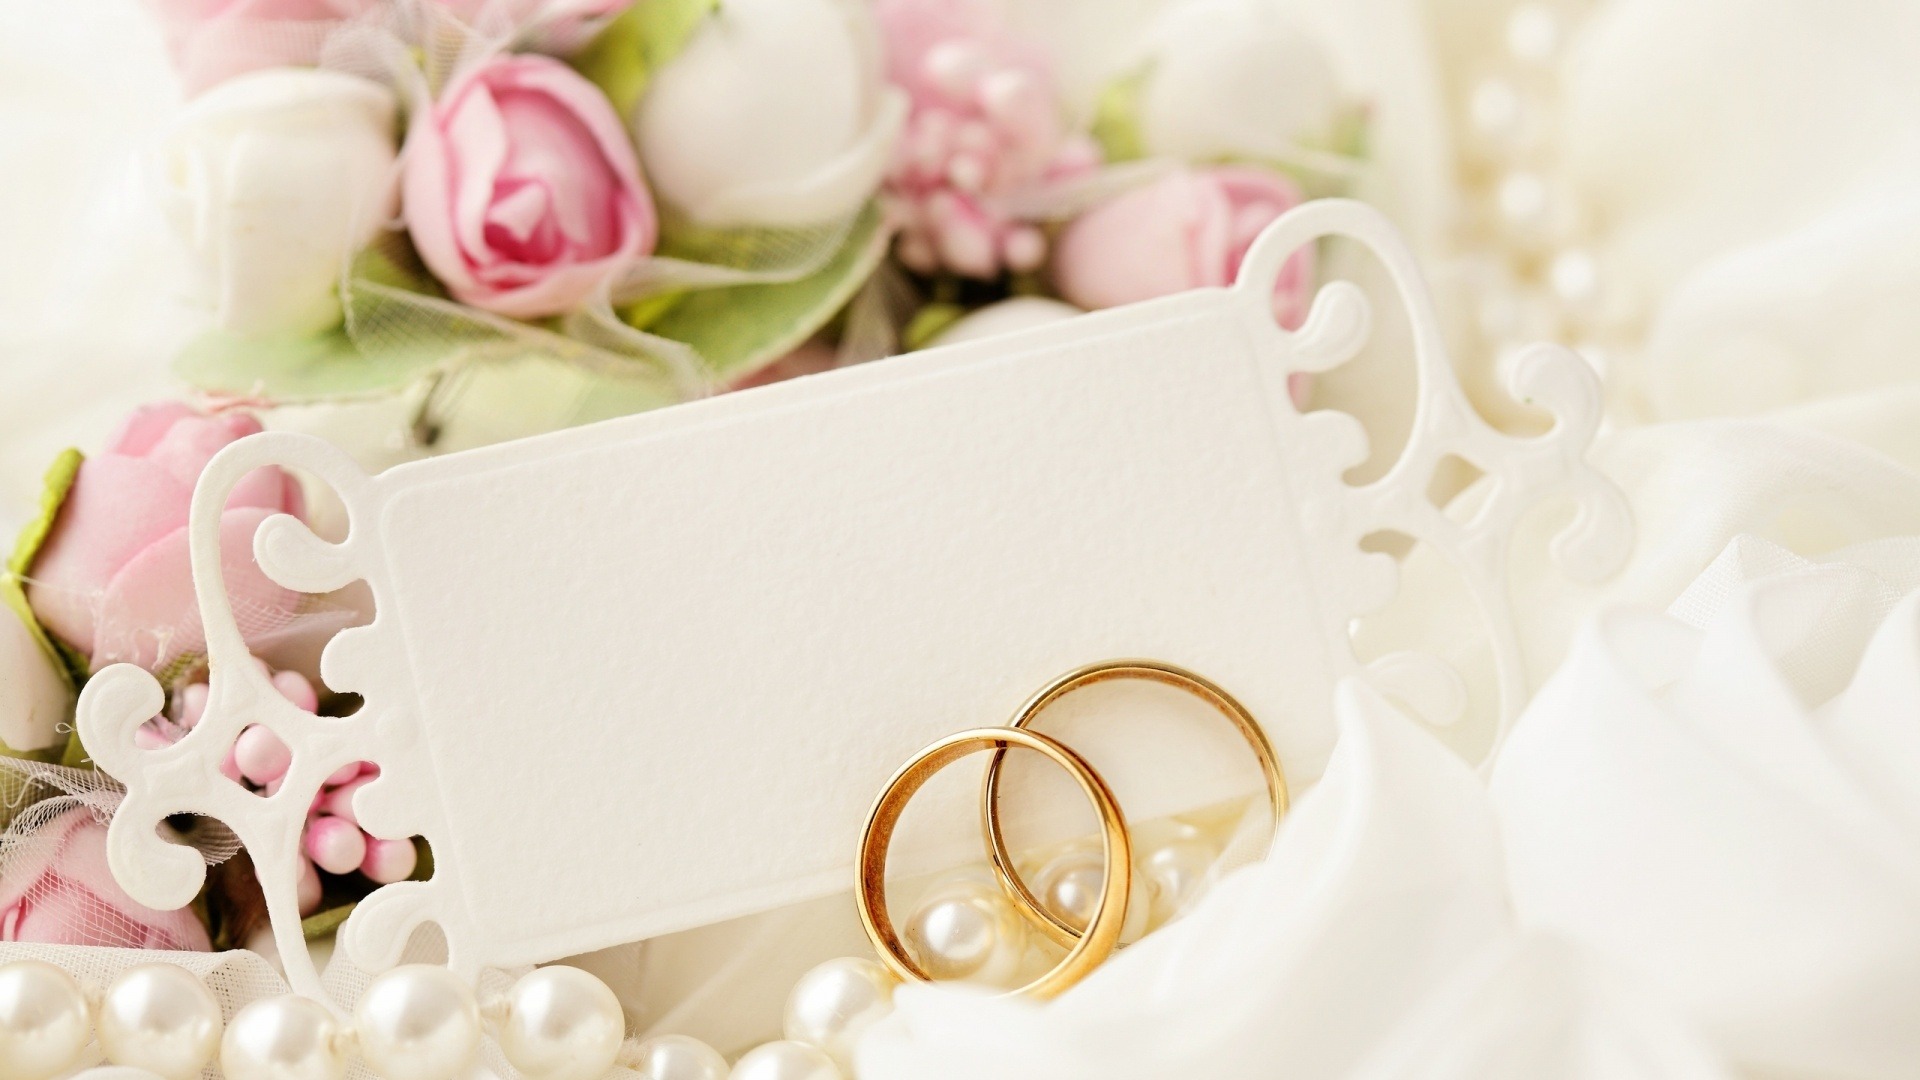 Wedding Wallpaper Picture hd